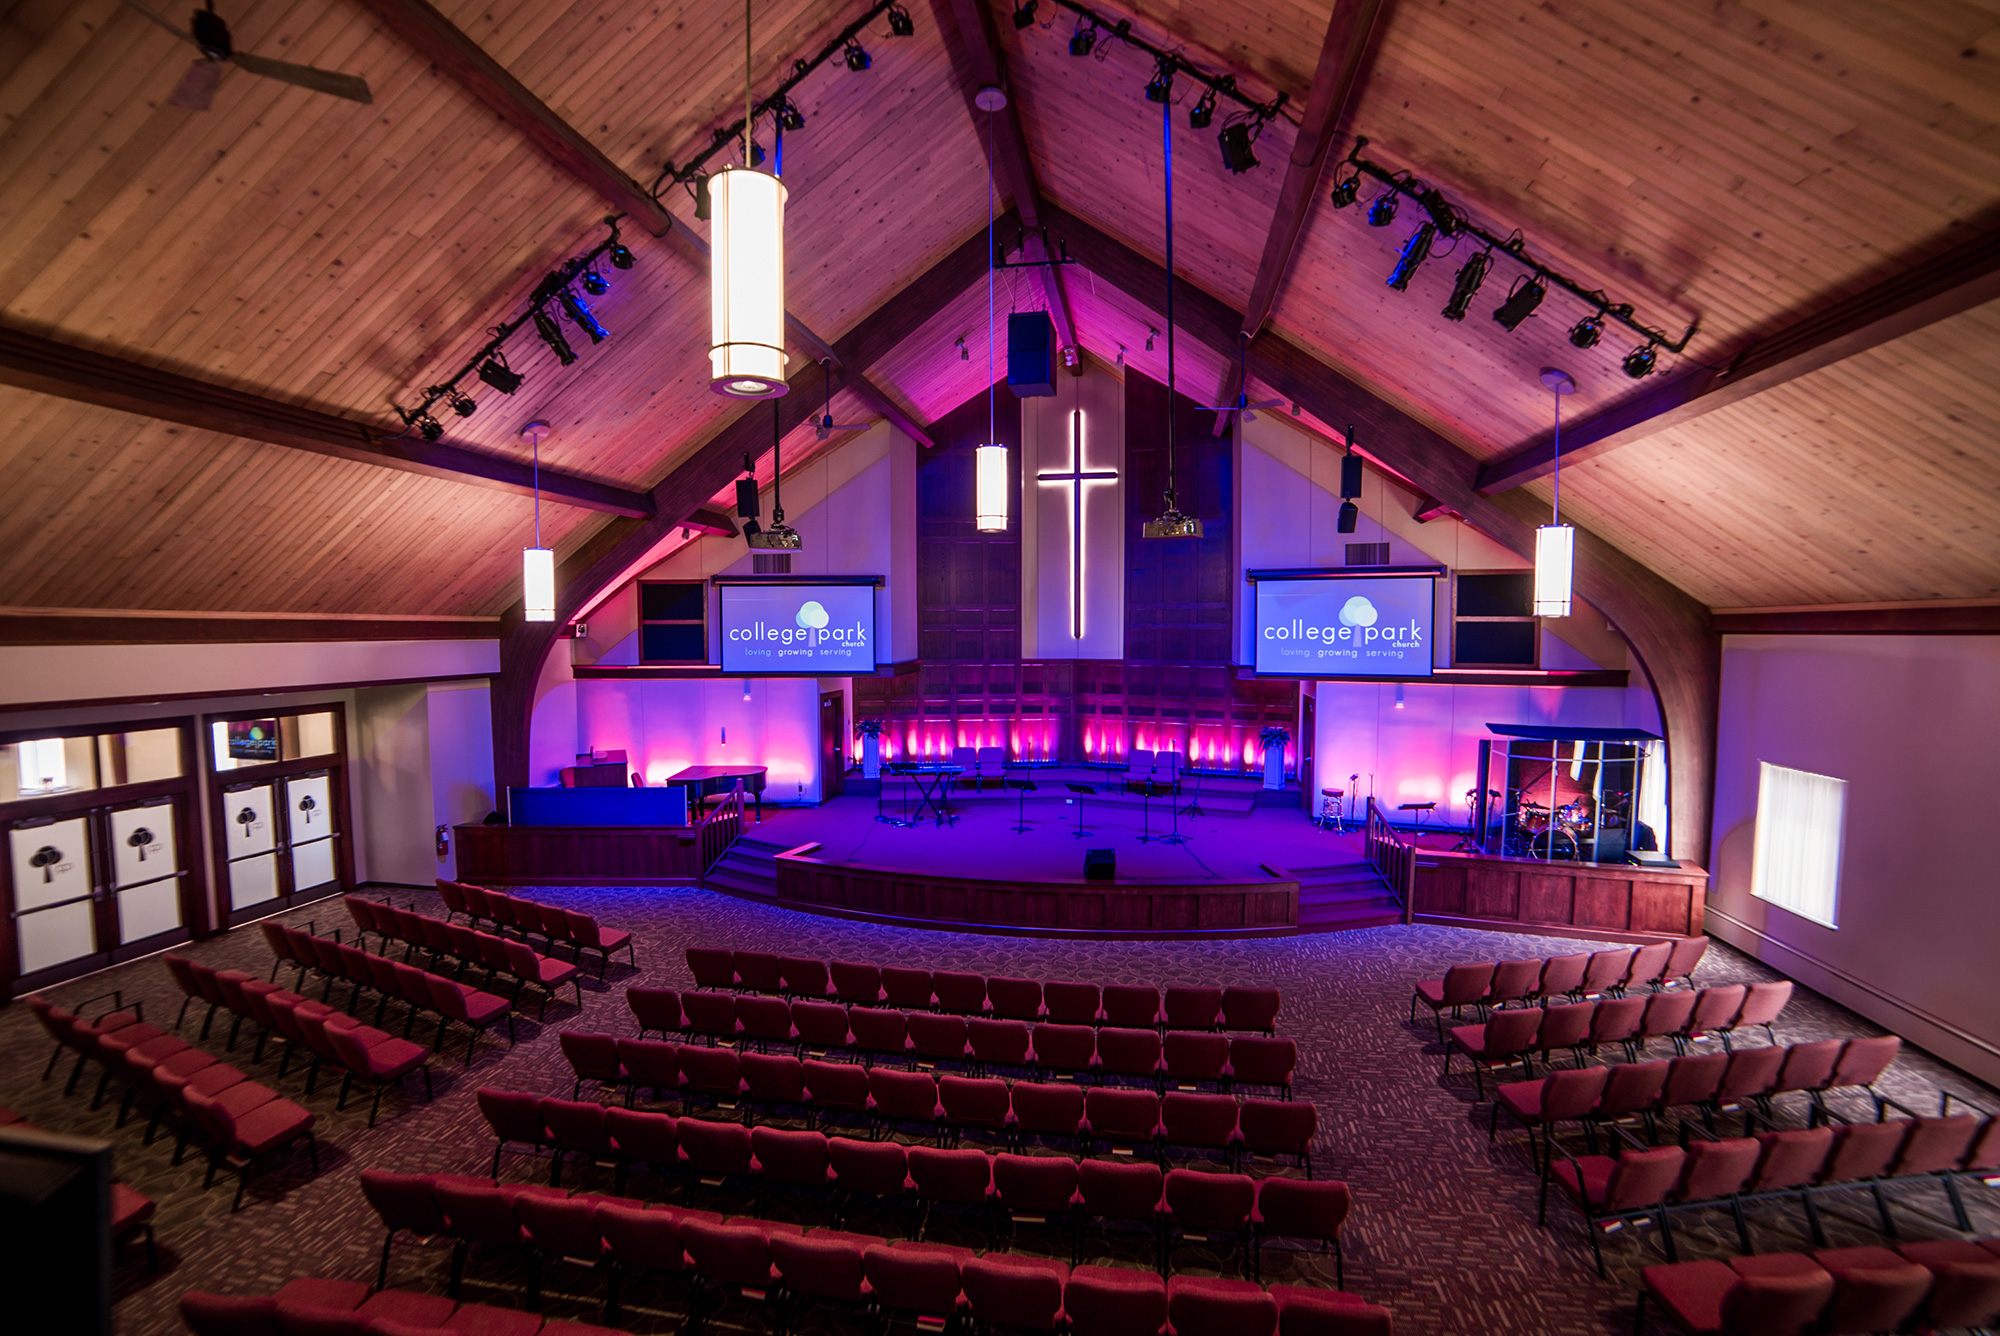 This upgrade to the video lighting and audio capabilities has enhanced the visual appeal of the sanctuary. & College Park Church | Michael Kinder u0026 Sons